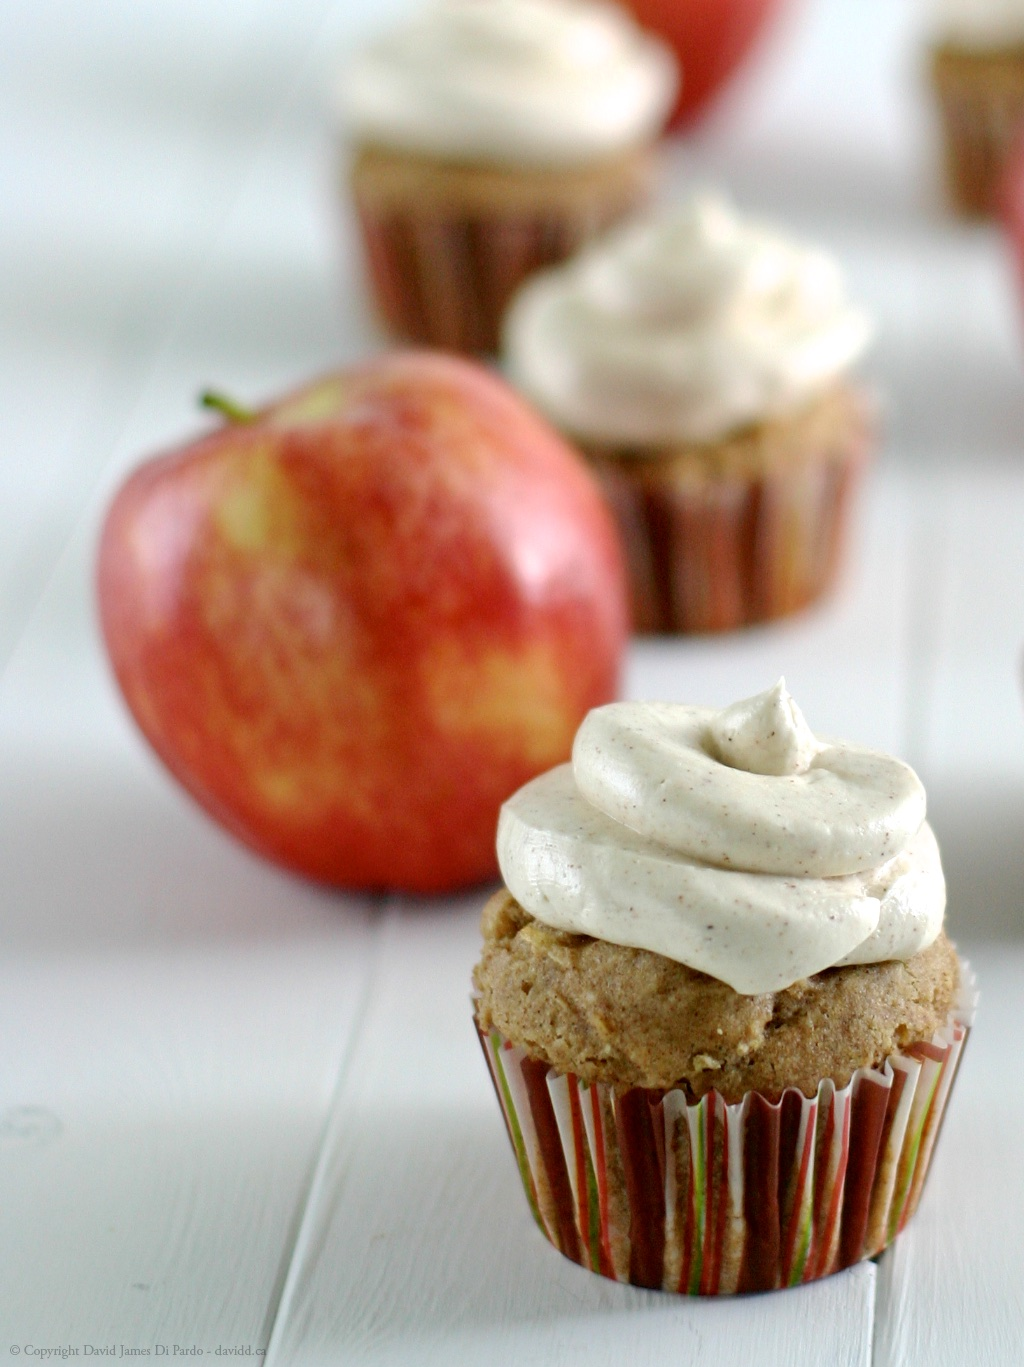 Vegan Apple and Cinnamon Cupcake Recipe